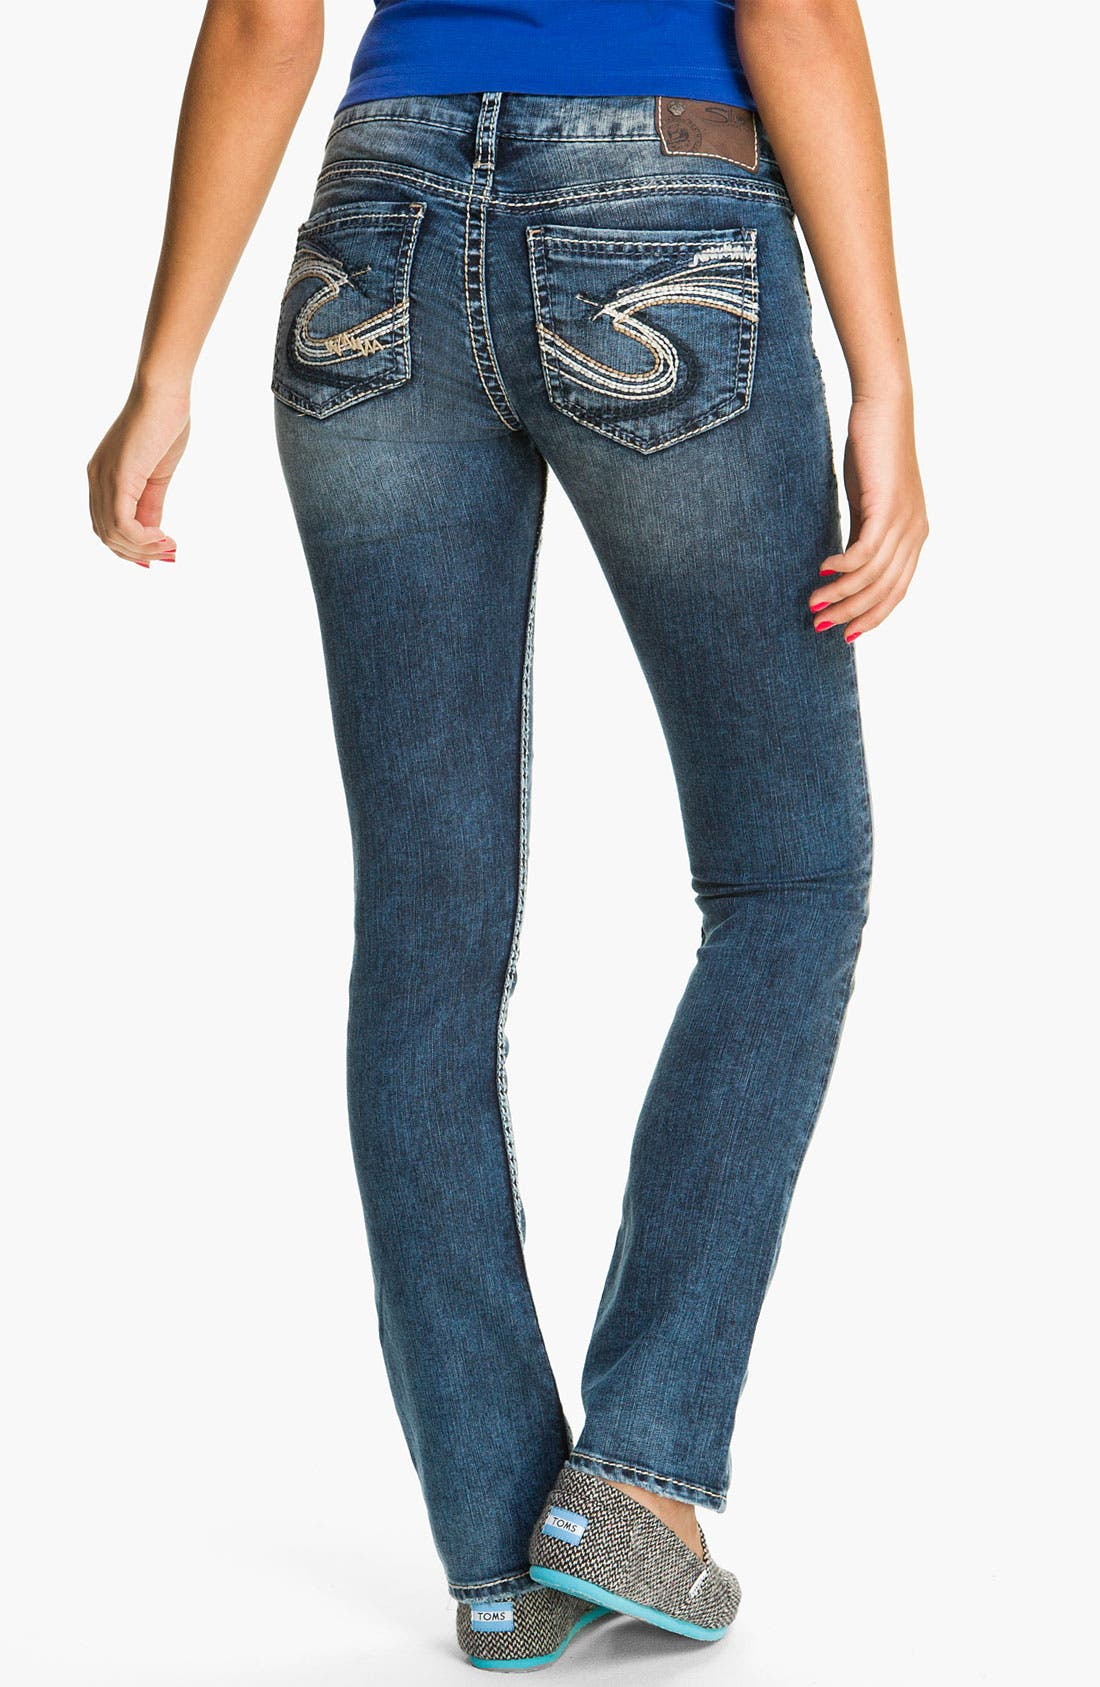 Alternate Image 1 Selected - Silver Jeans Co. 'Berkeley' Straight Leg Jeans (Juniors)